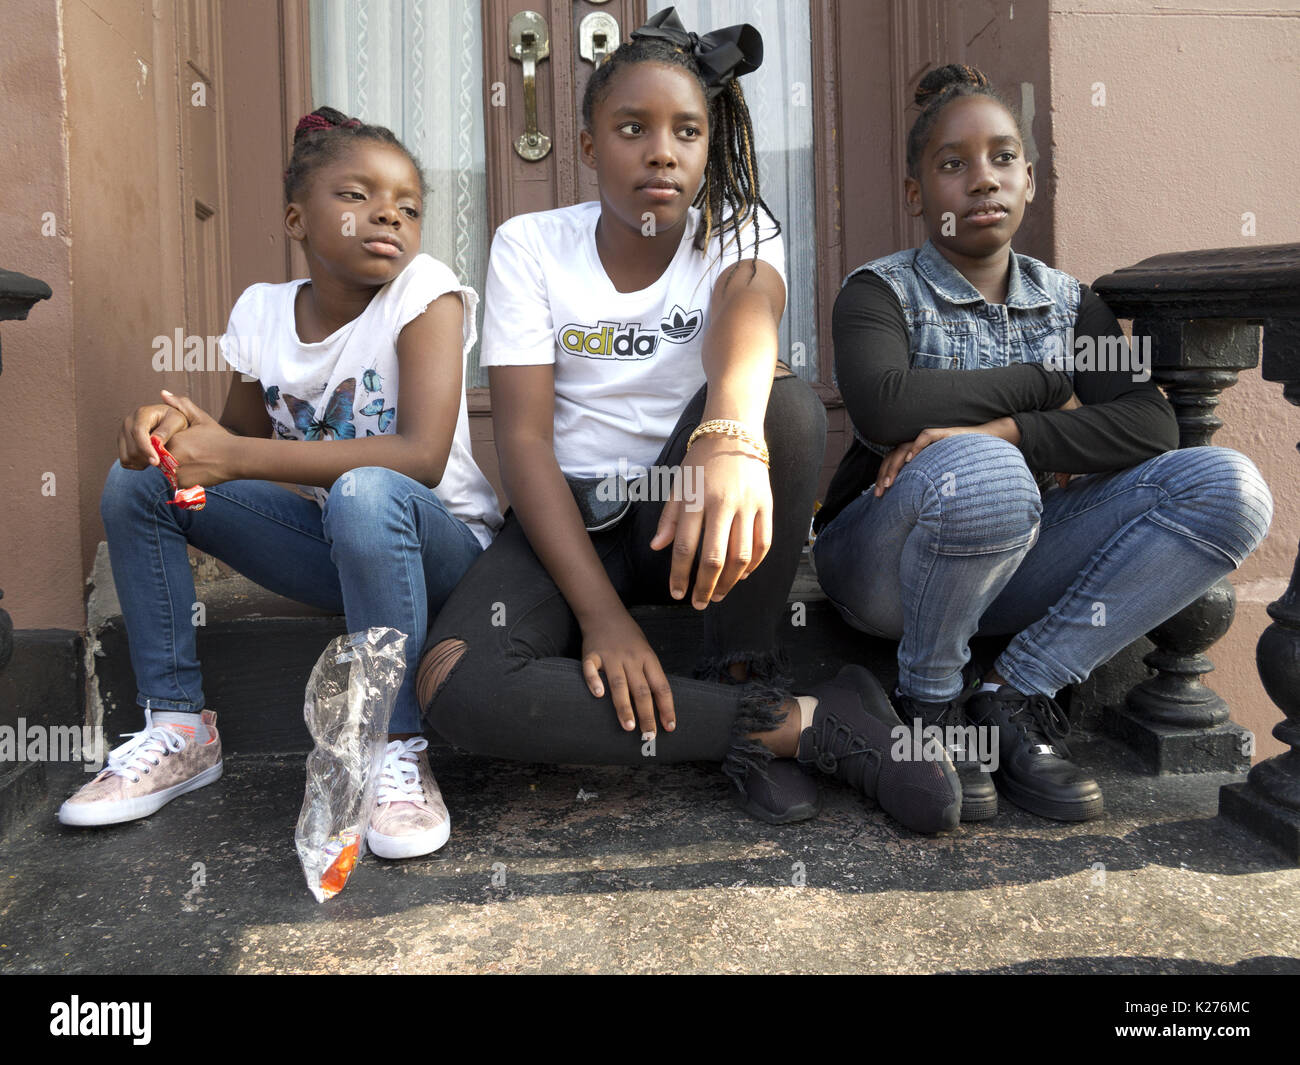 Girls on stoop in the Bedford Stuyvesant section of Brooklyn, NY, Aug.26, 2017. - Stock Image